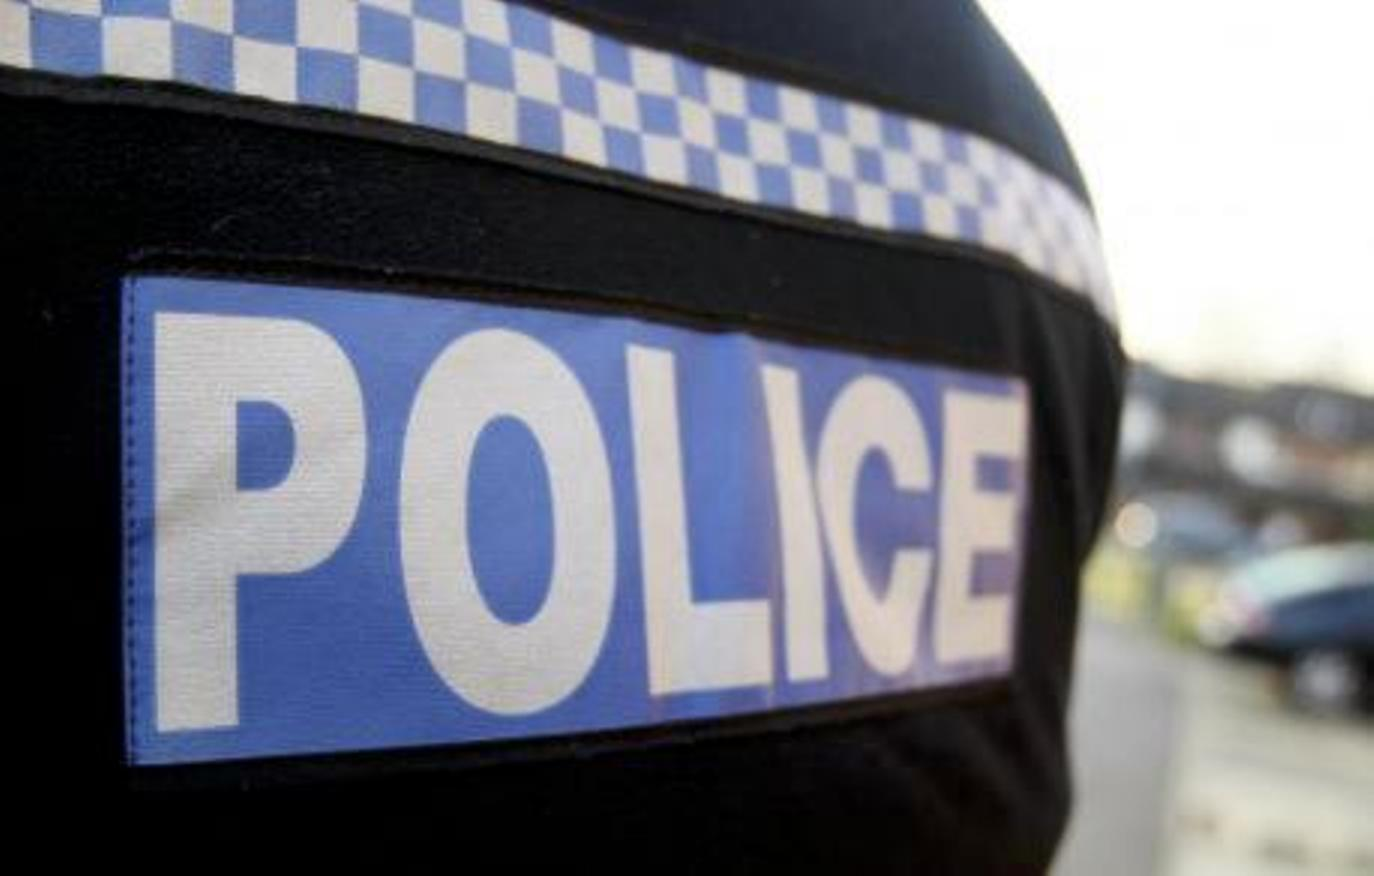 Police are appealing for information on the stolen cars